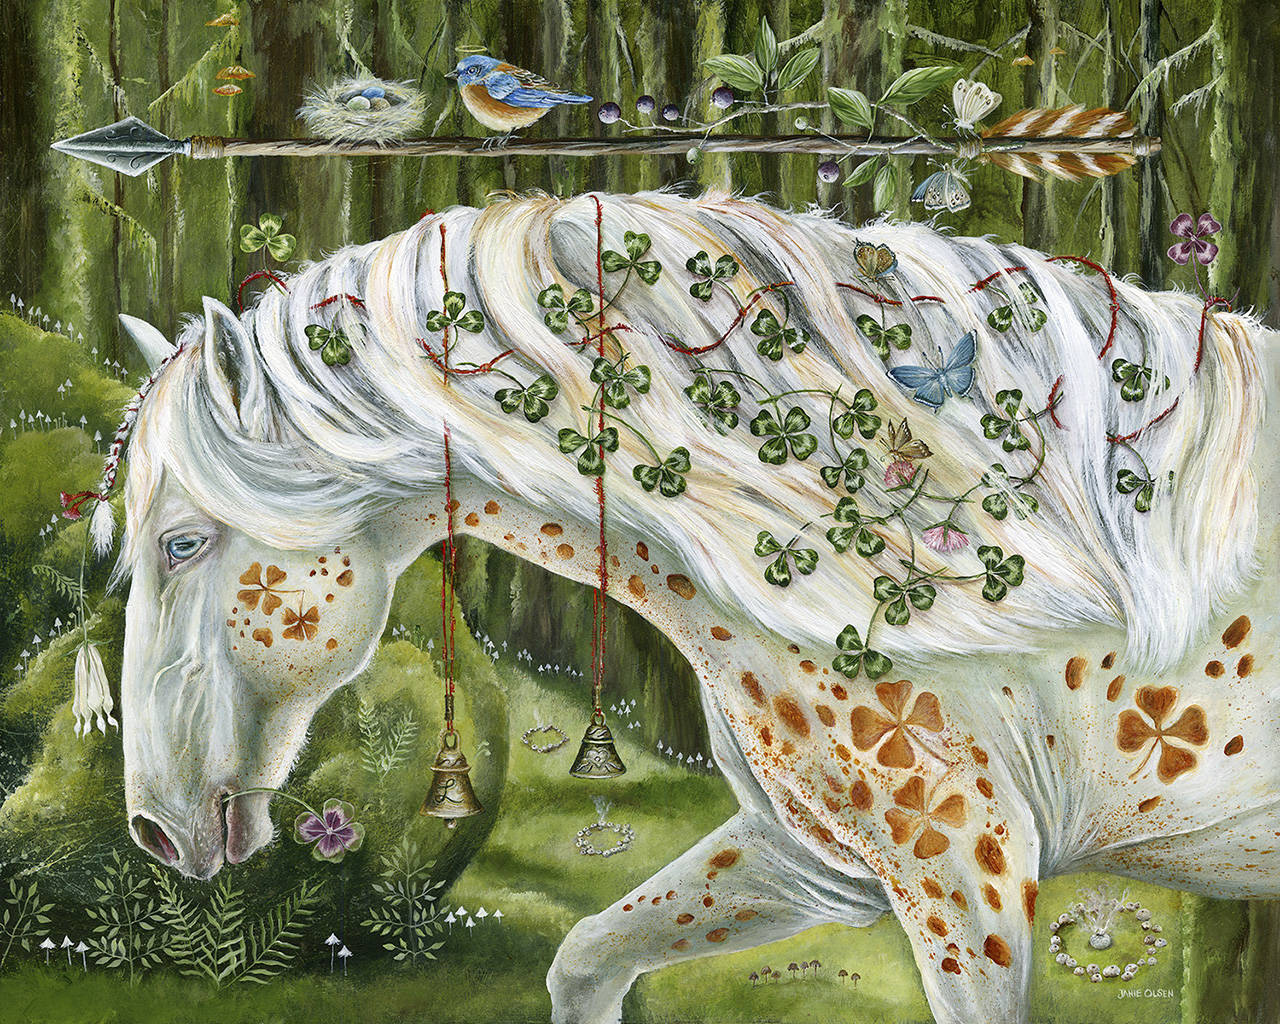 """See """"Luck Walk With Me"""" by Janie Olsen in the Artist of the Year's exhibition """"Animal Kingdom"""" through April 13 at the Schack Art Center in Everett."""